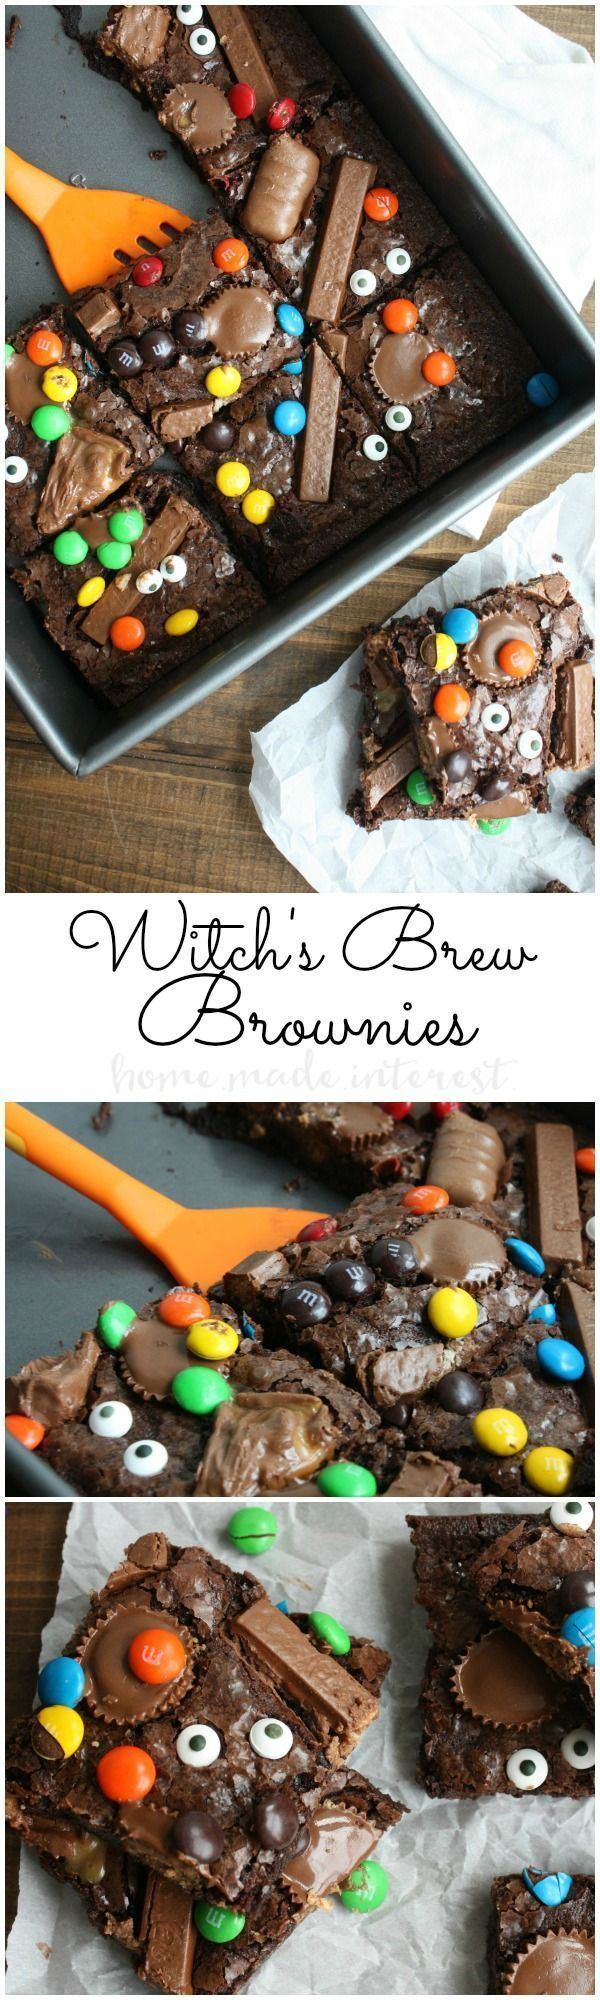 These ooey, gooey, chocolate brownies are an easy recipe for using up all of that leftover Halloween candy. These are the perfect Halloween Dessert recipe for your Halloween party or you can just make them for the kids with all of that Halloween candy they bring home. AD